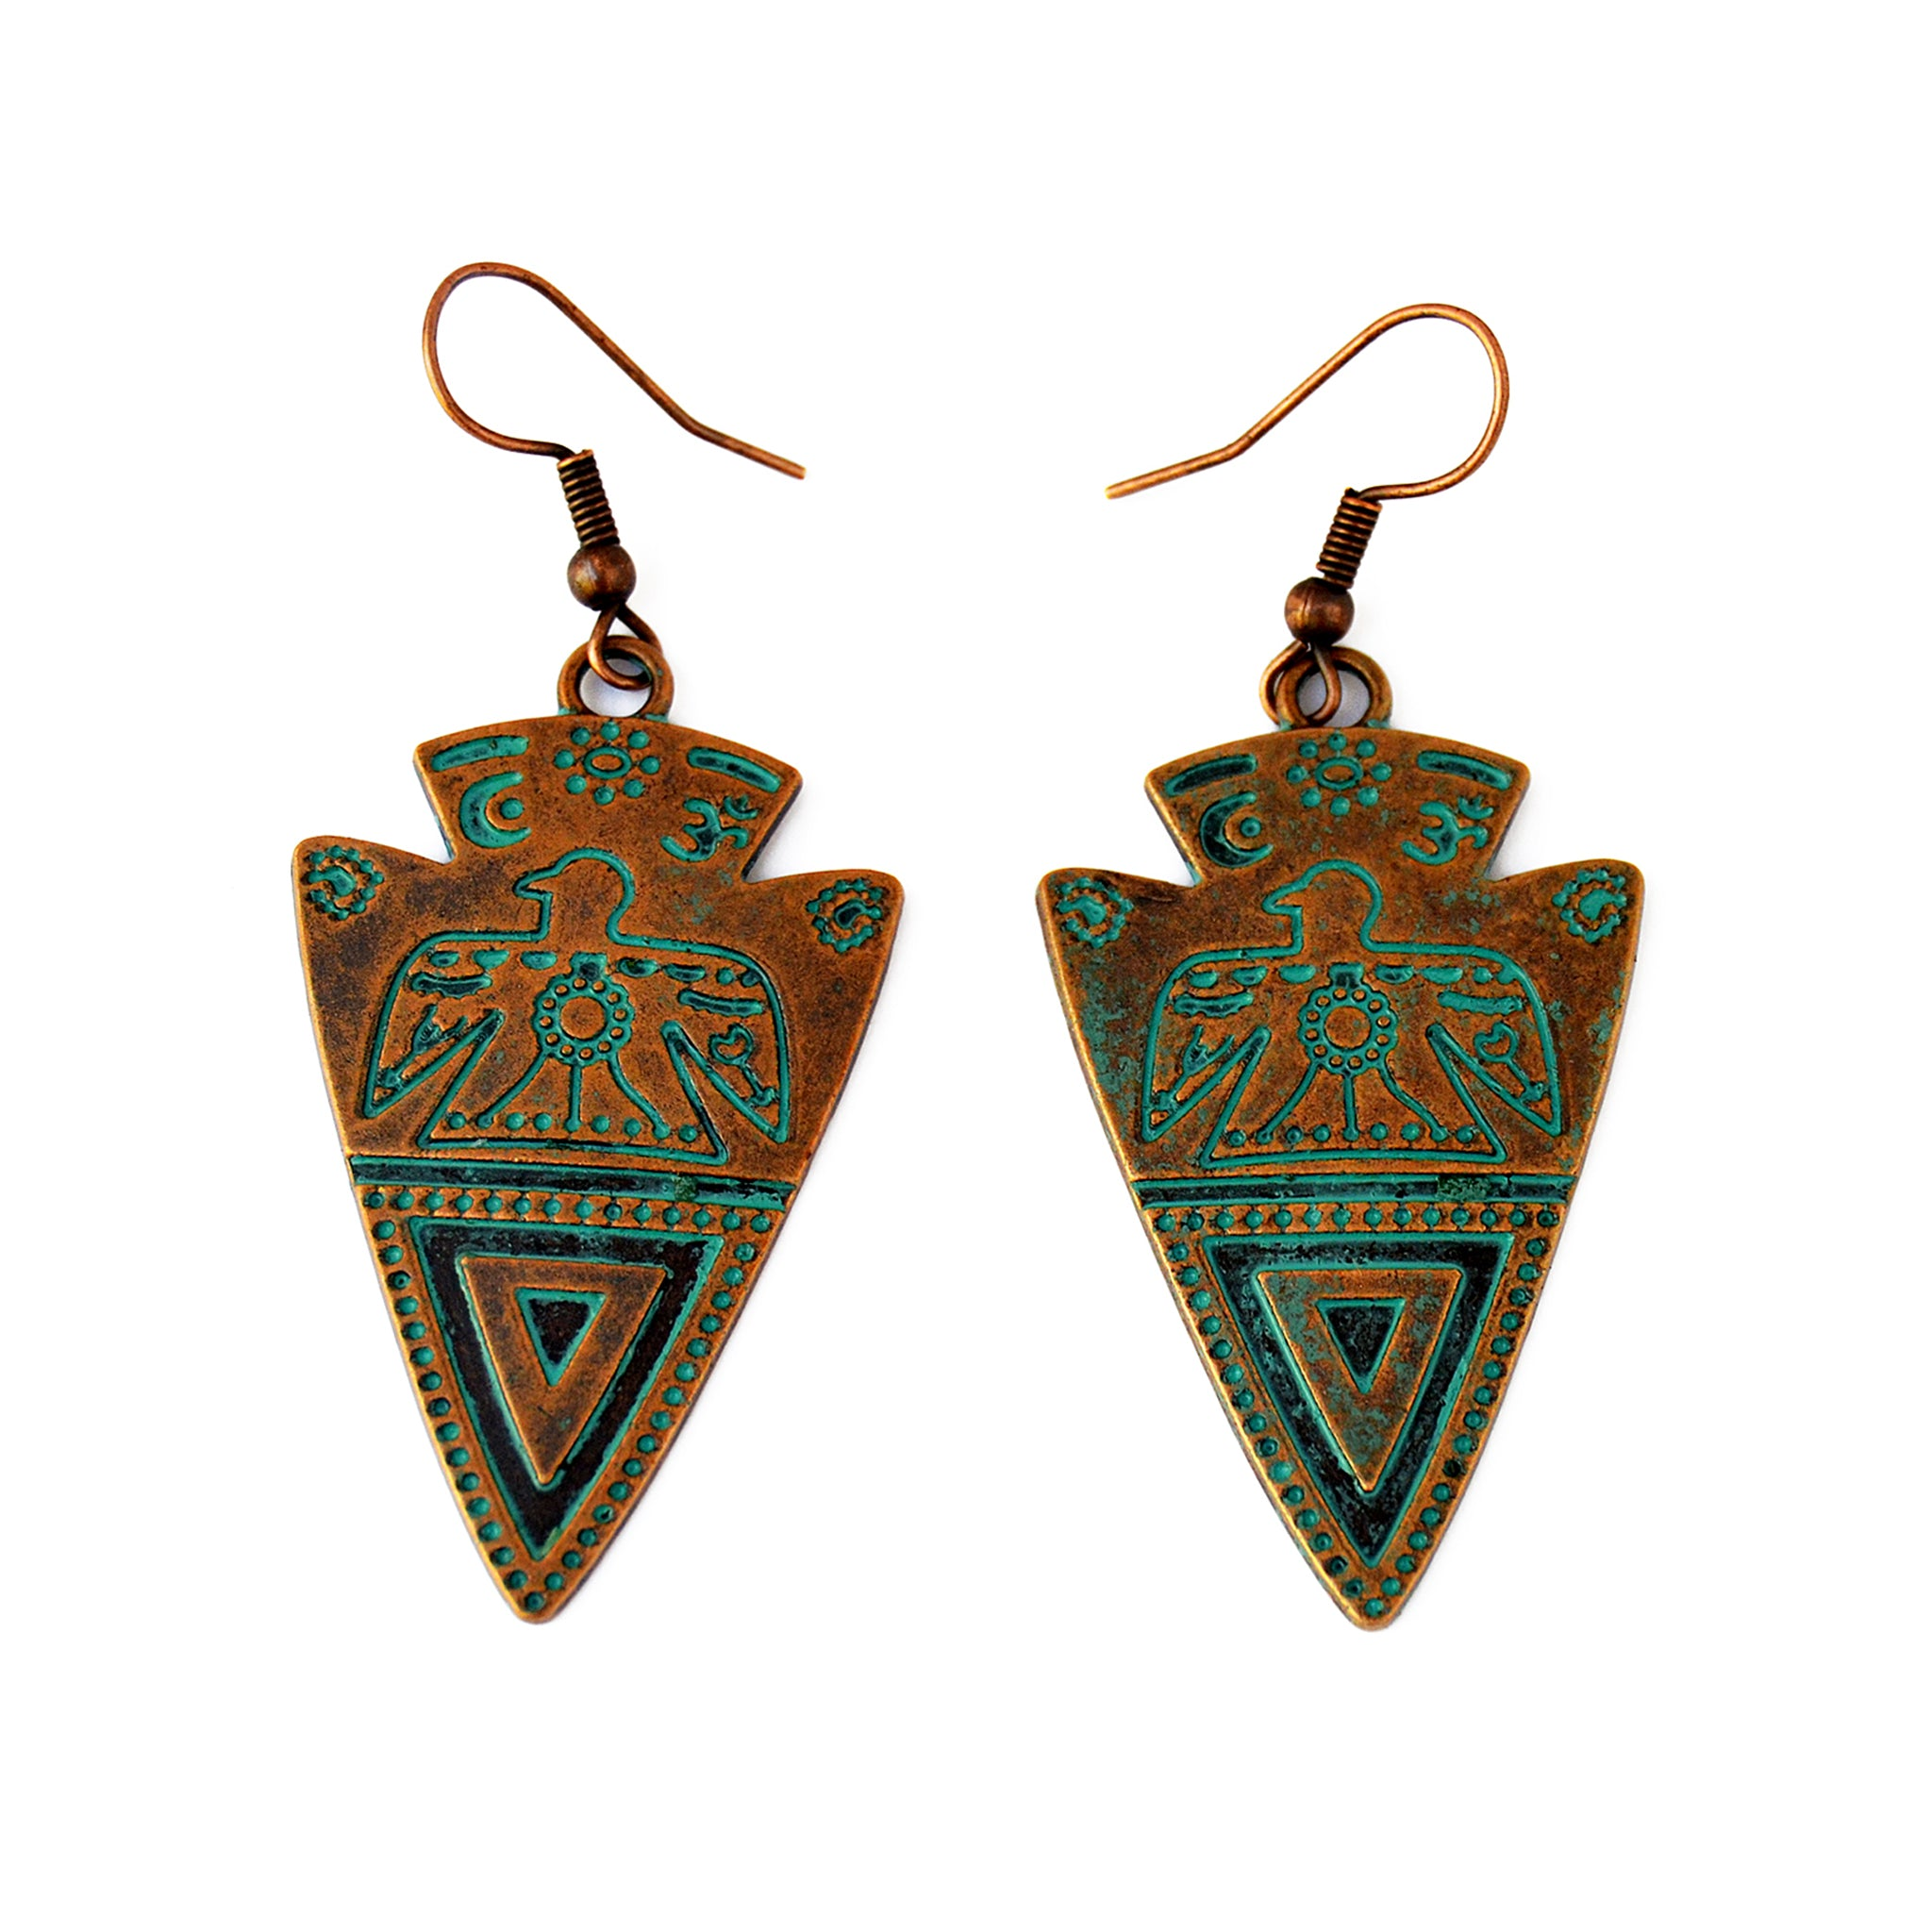 Tribal aztec earrings